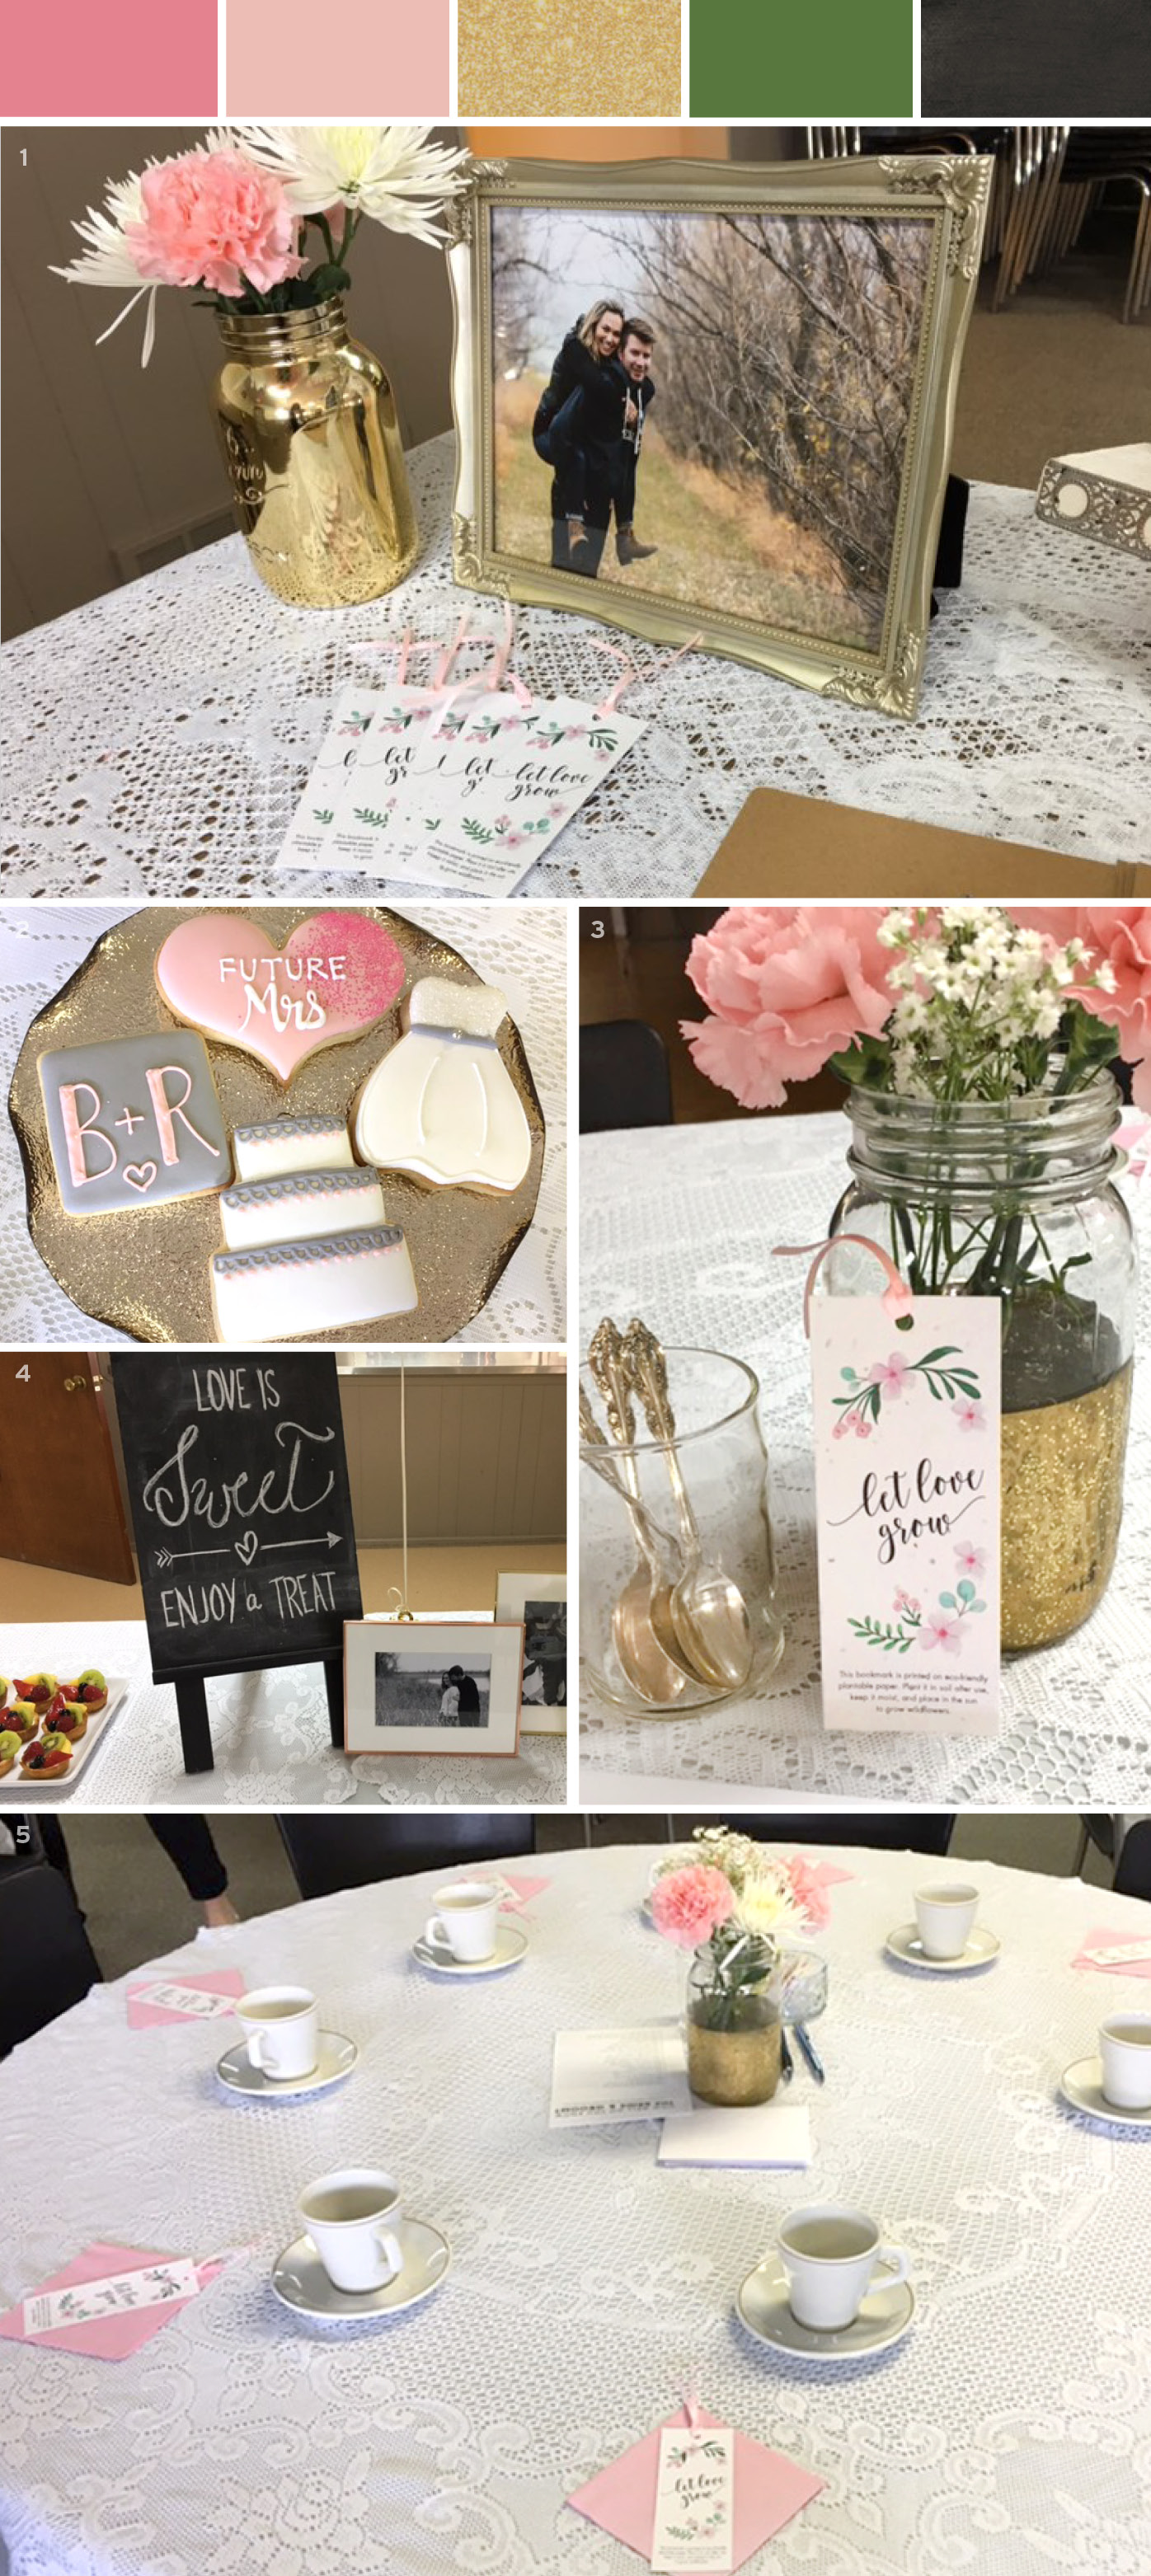 Take a look at how seed paper bookmark wedding favors were used at this beautiful bridal shower with a classy vintage look.